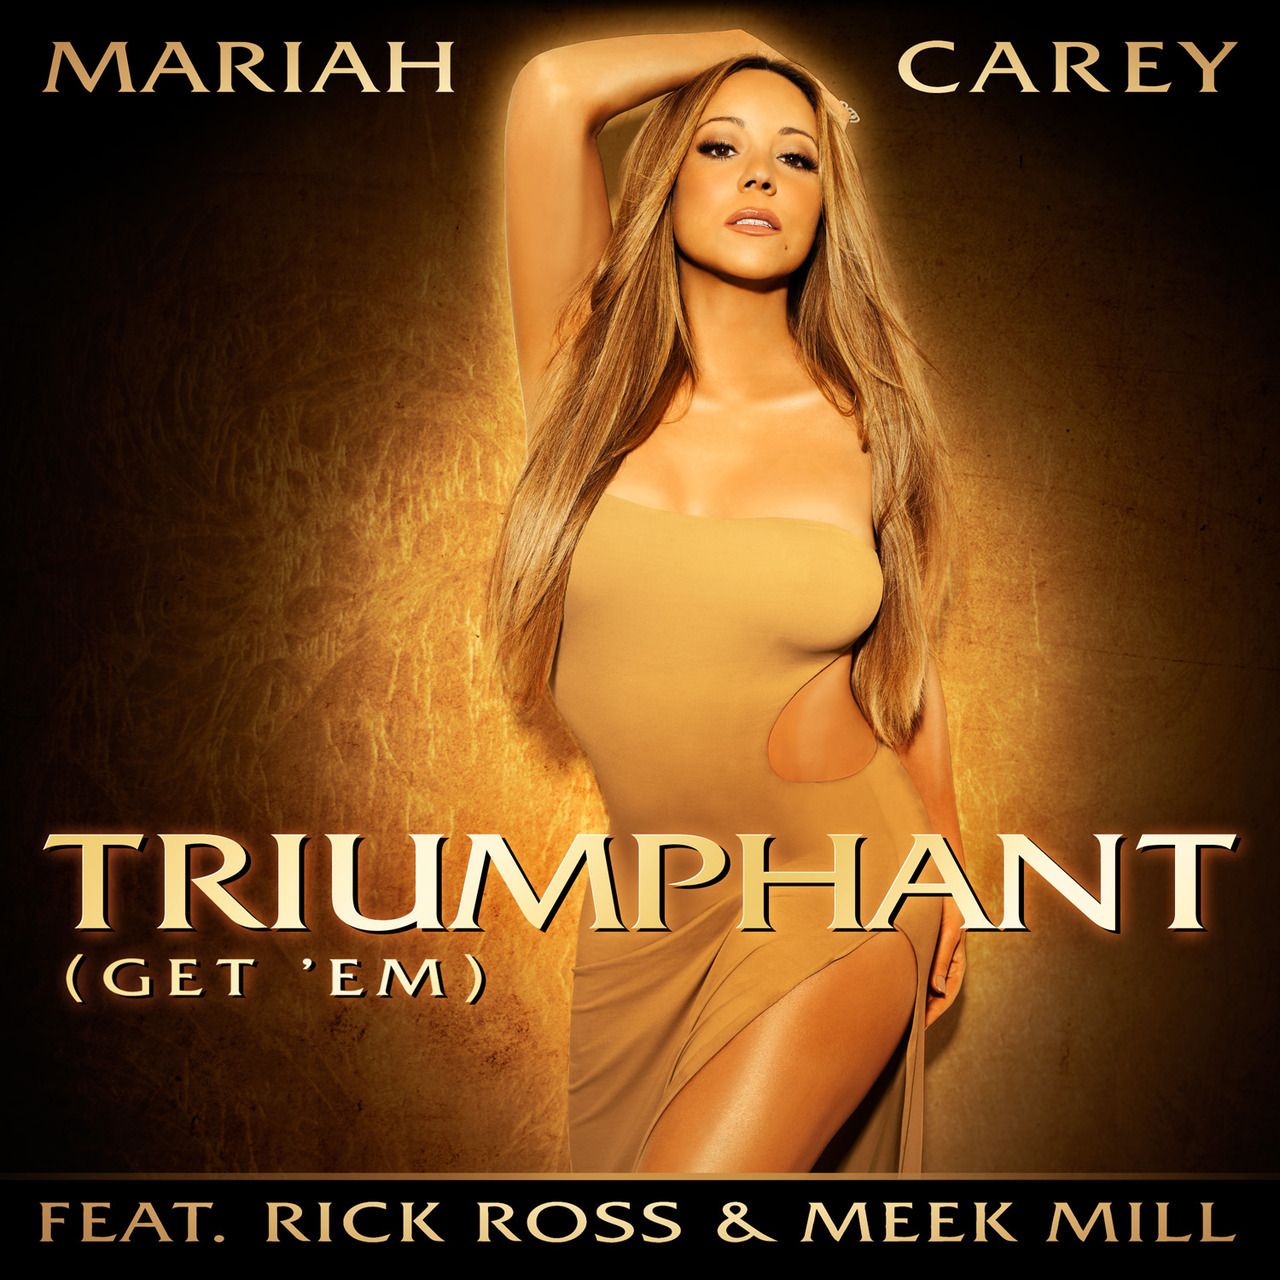 "REVIEW: Mariah Carey, ""Triumphant"" OK, I'll be blunt. Mariah Carey's new single is shit. I may not historically be Mariah's biggest fan, but I can give her credit when credit is due. If you want to talk about a real triumph, how about her 2005 comeback album The Emancipation of Mimi? Since then, Mariah has been free falling. Each subsequent album gets worse, the hit singles lacking and the creativity draining. 2008's E=MC² only went platinum, compared to Emancipation's 6xPlatinum, and her last album Memoirs of an Imperfect Angel was only certified gold. At least ""Touch My Body"" was a number one hit, and ""Obsessed"" was top ten. If Mariah Carey is hoping for a number one hit with this album, she may need to look elsewhere, because ""Triumphant"" will not be that hit.  The song aims for the same R&B crossover appeal as the aforementioned songs, something that has worked well for Mariah in the past, but the song doesn't really cater to any current pop or R&B trends. That's not always a bad thing – unfortunately, ""Triumphant"" is largely forgettable, and guest verses from Rick Ross and Meek Mill are unnecessary."